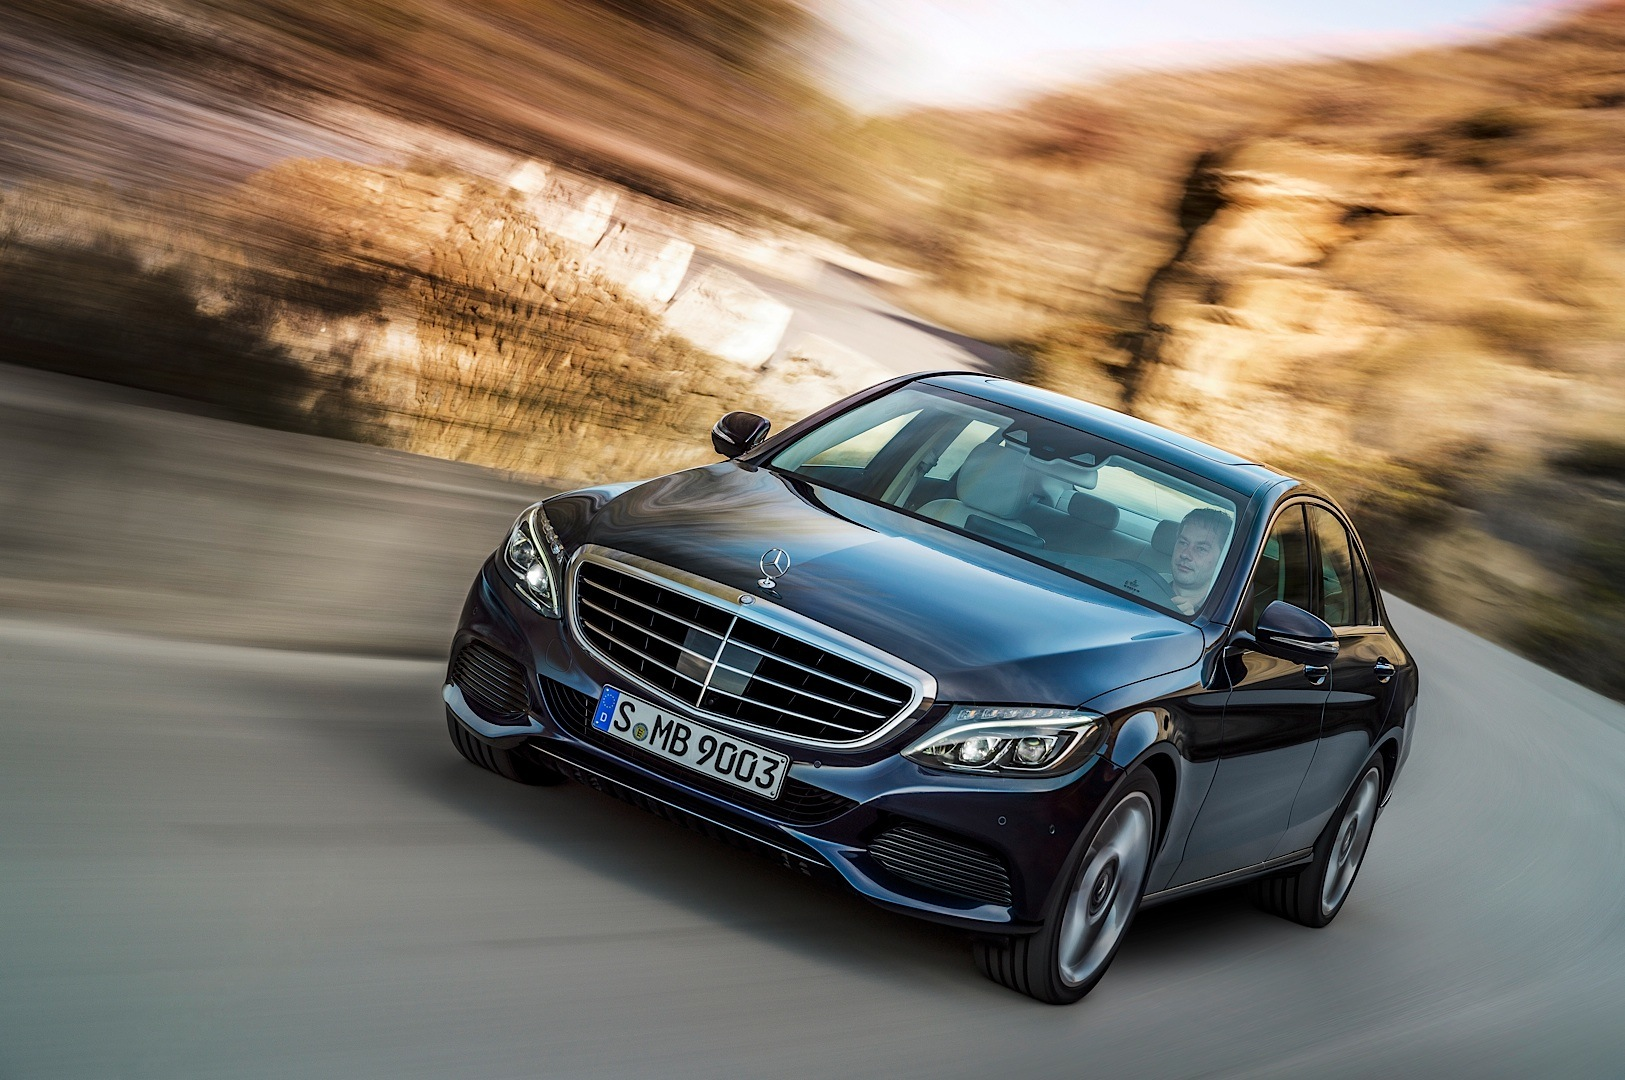 2015 mercedes benz c class w205 gets priced in the uk autoevolution. Cars Review. Best American Auto & Cars Review